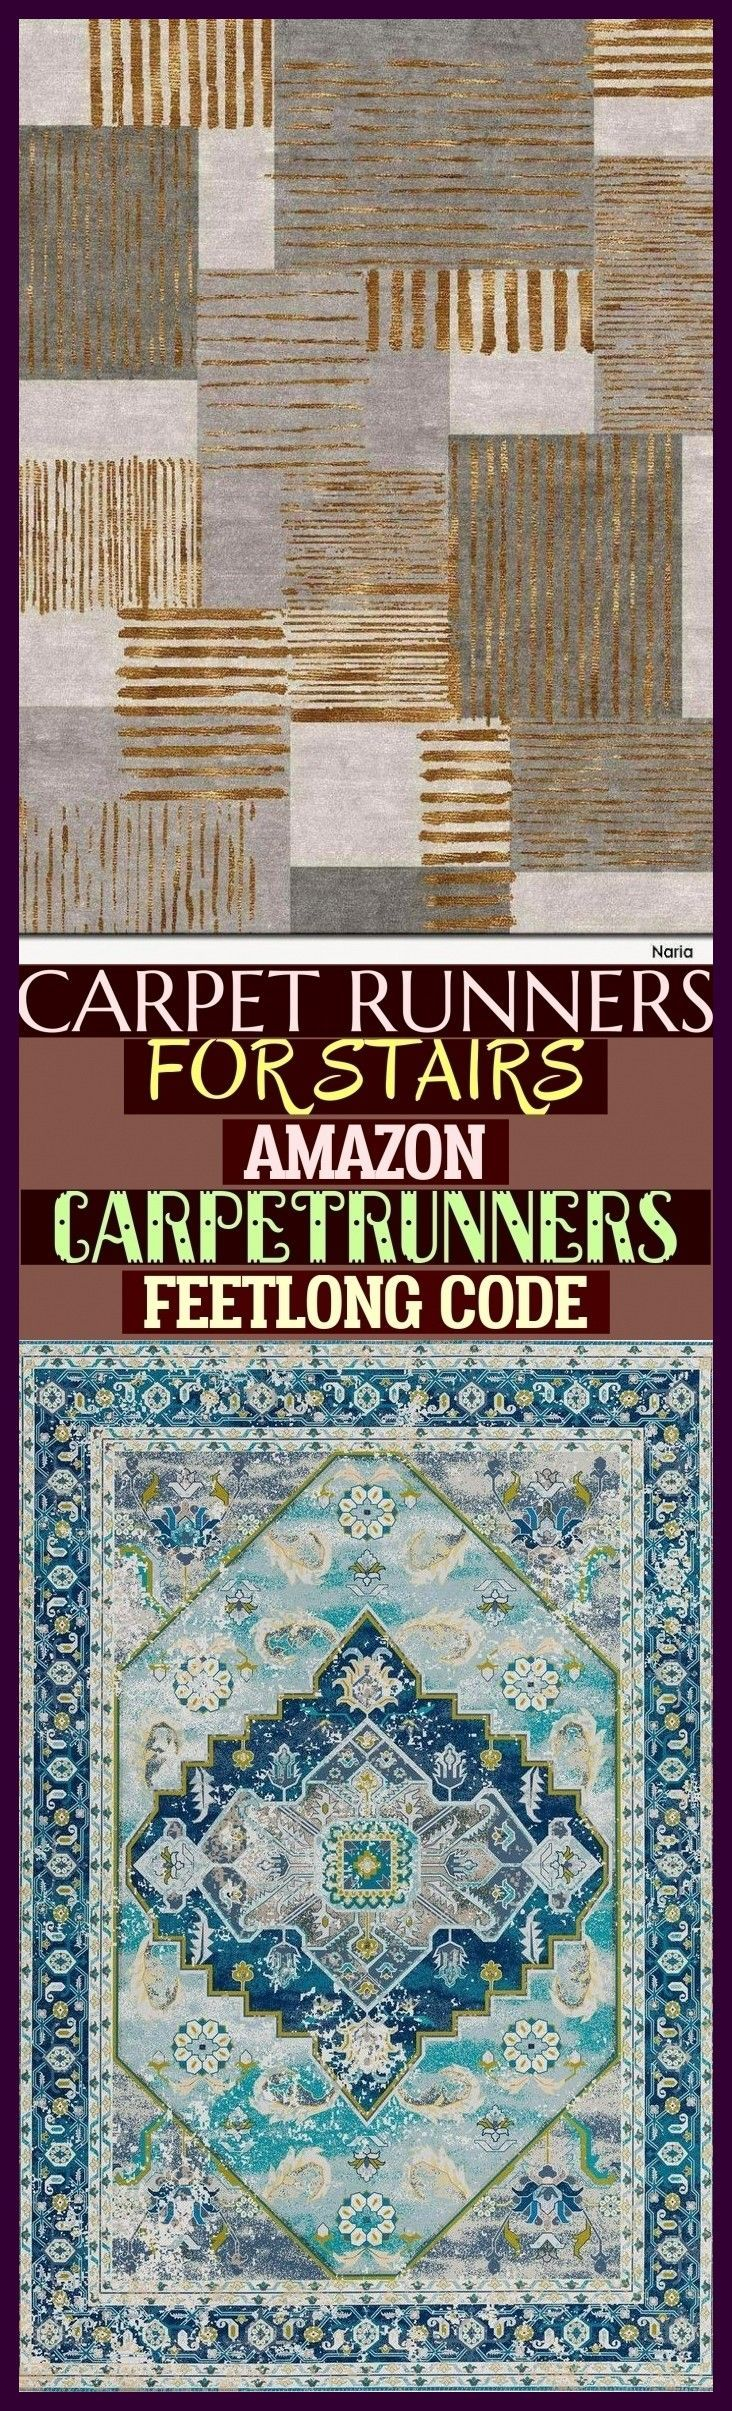 Best Carpet Runners For Stairs Amazon Carpetrunners Feetlong 640 x 480